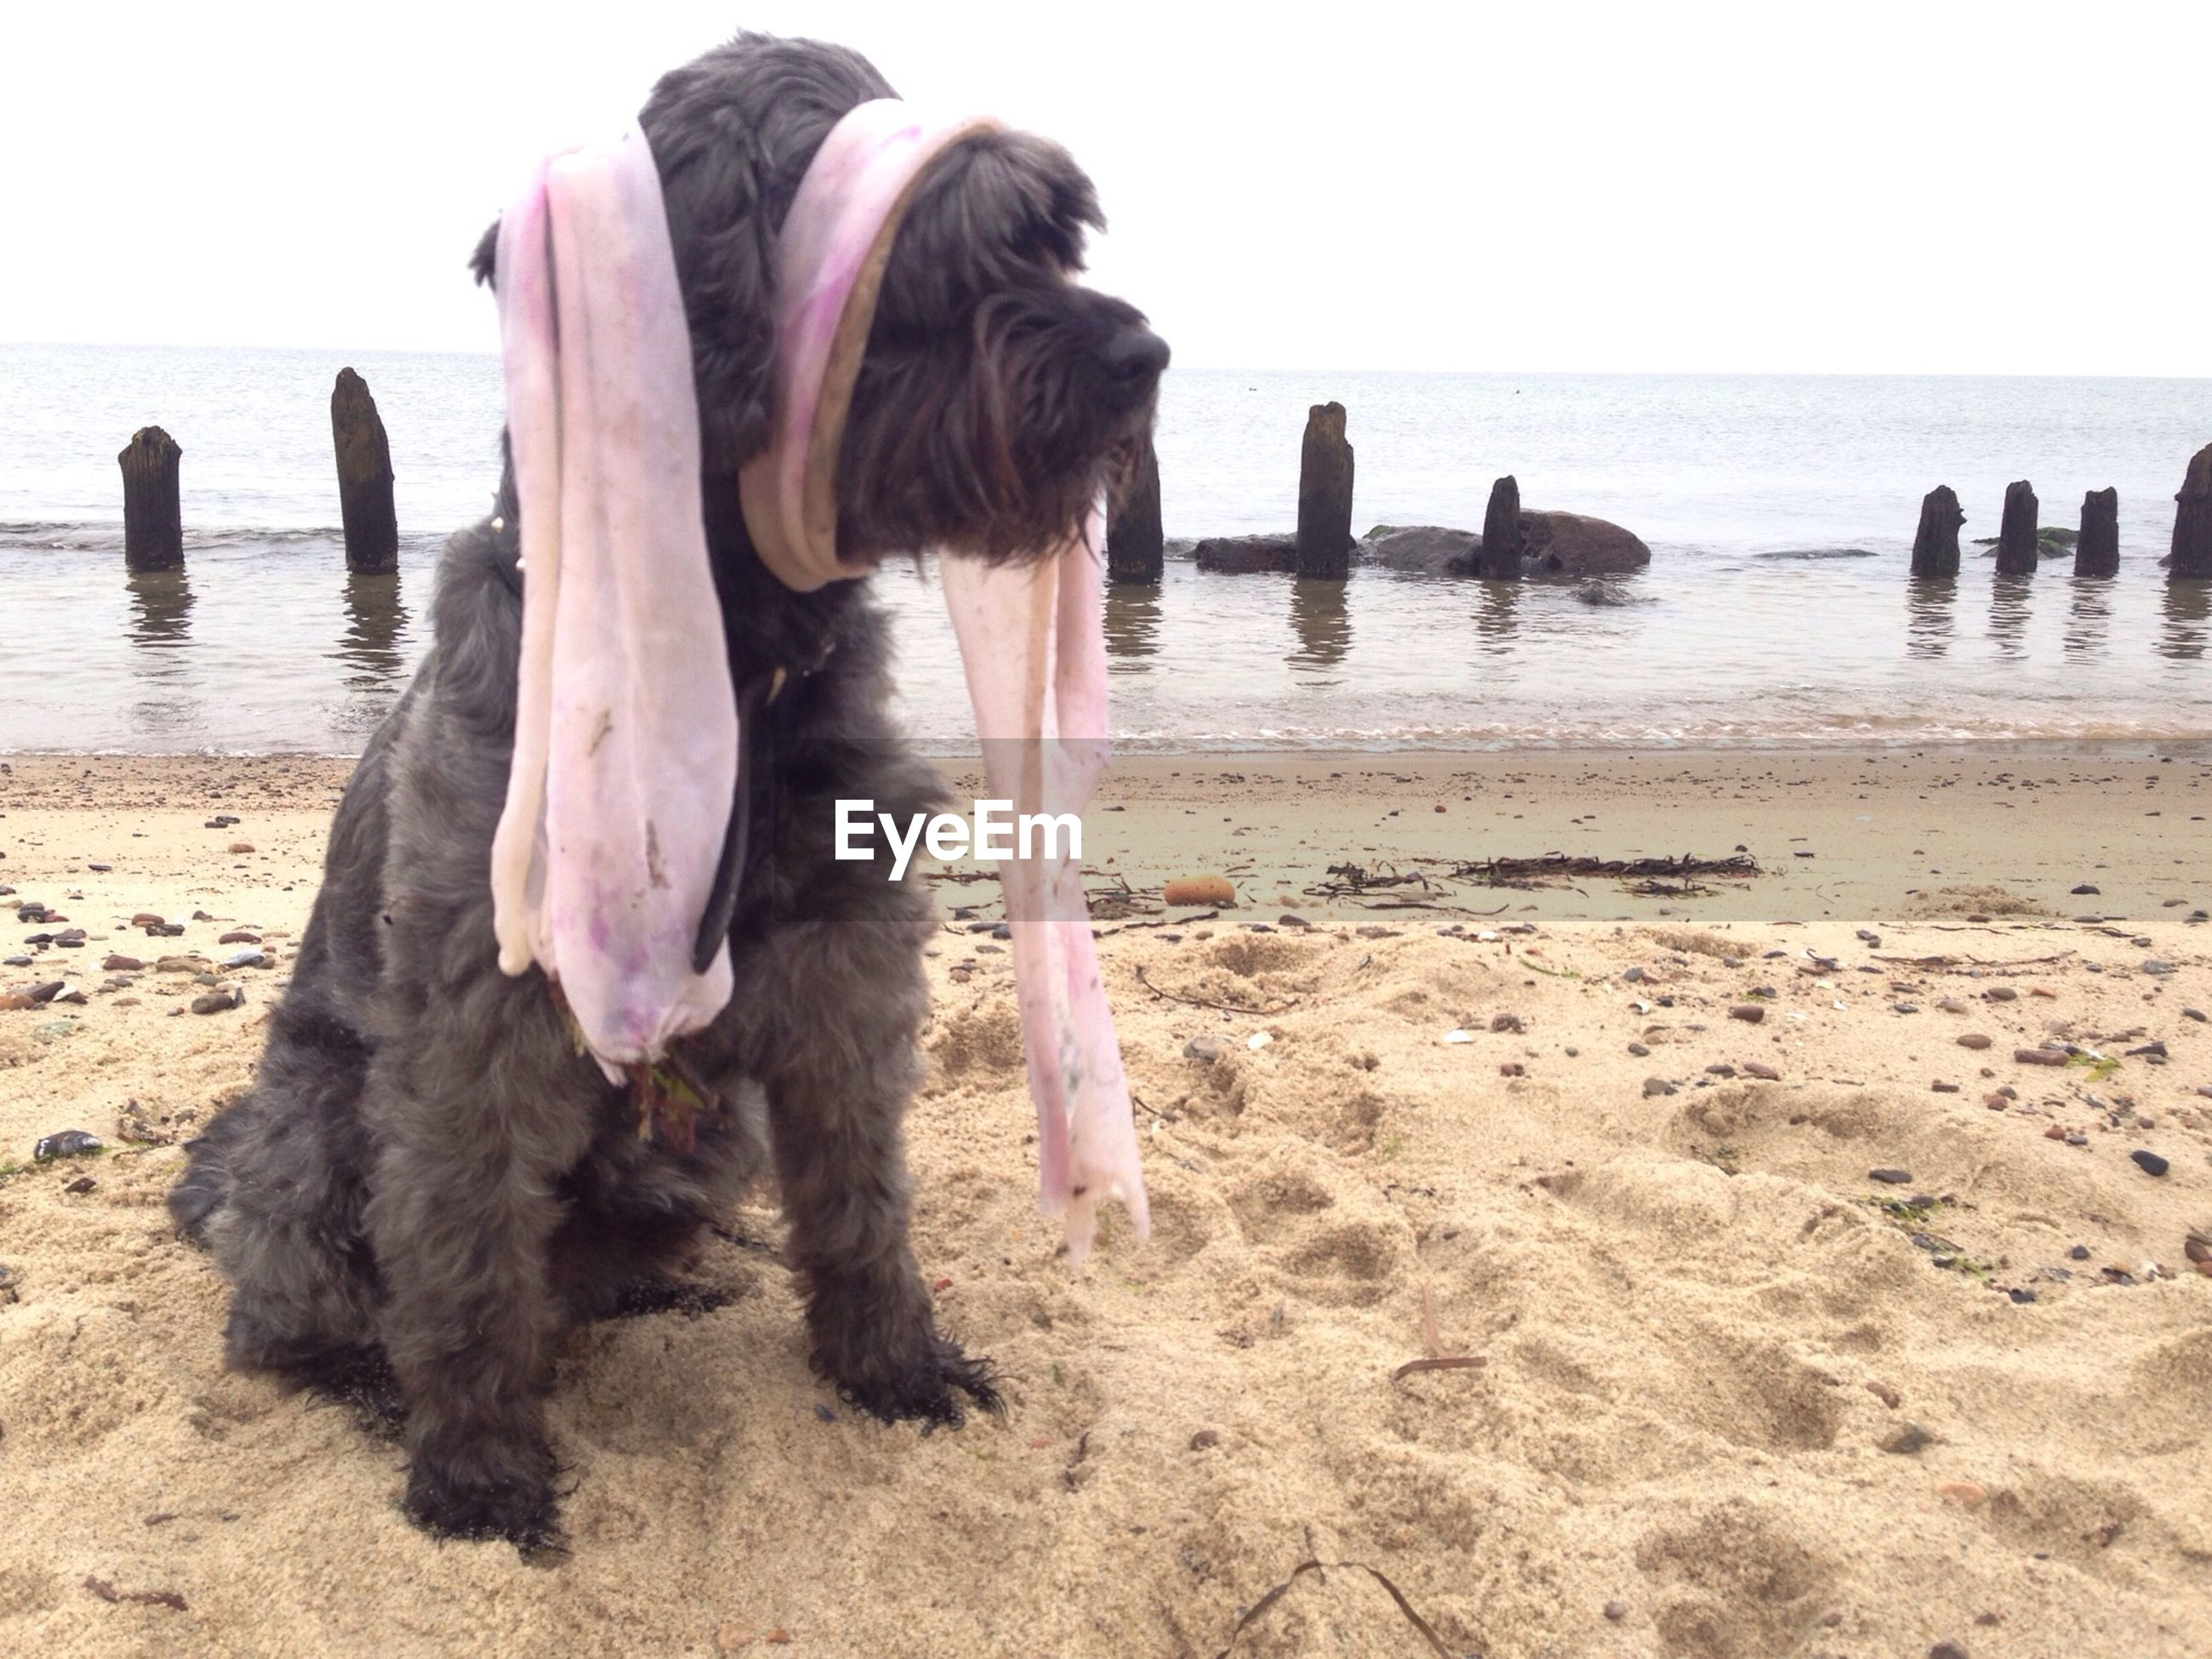 Black dog with dirty fabric at beach